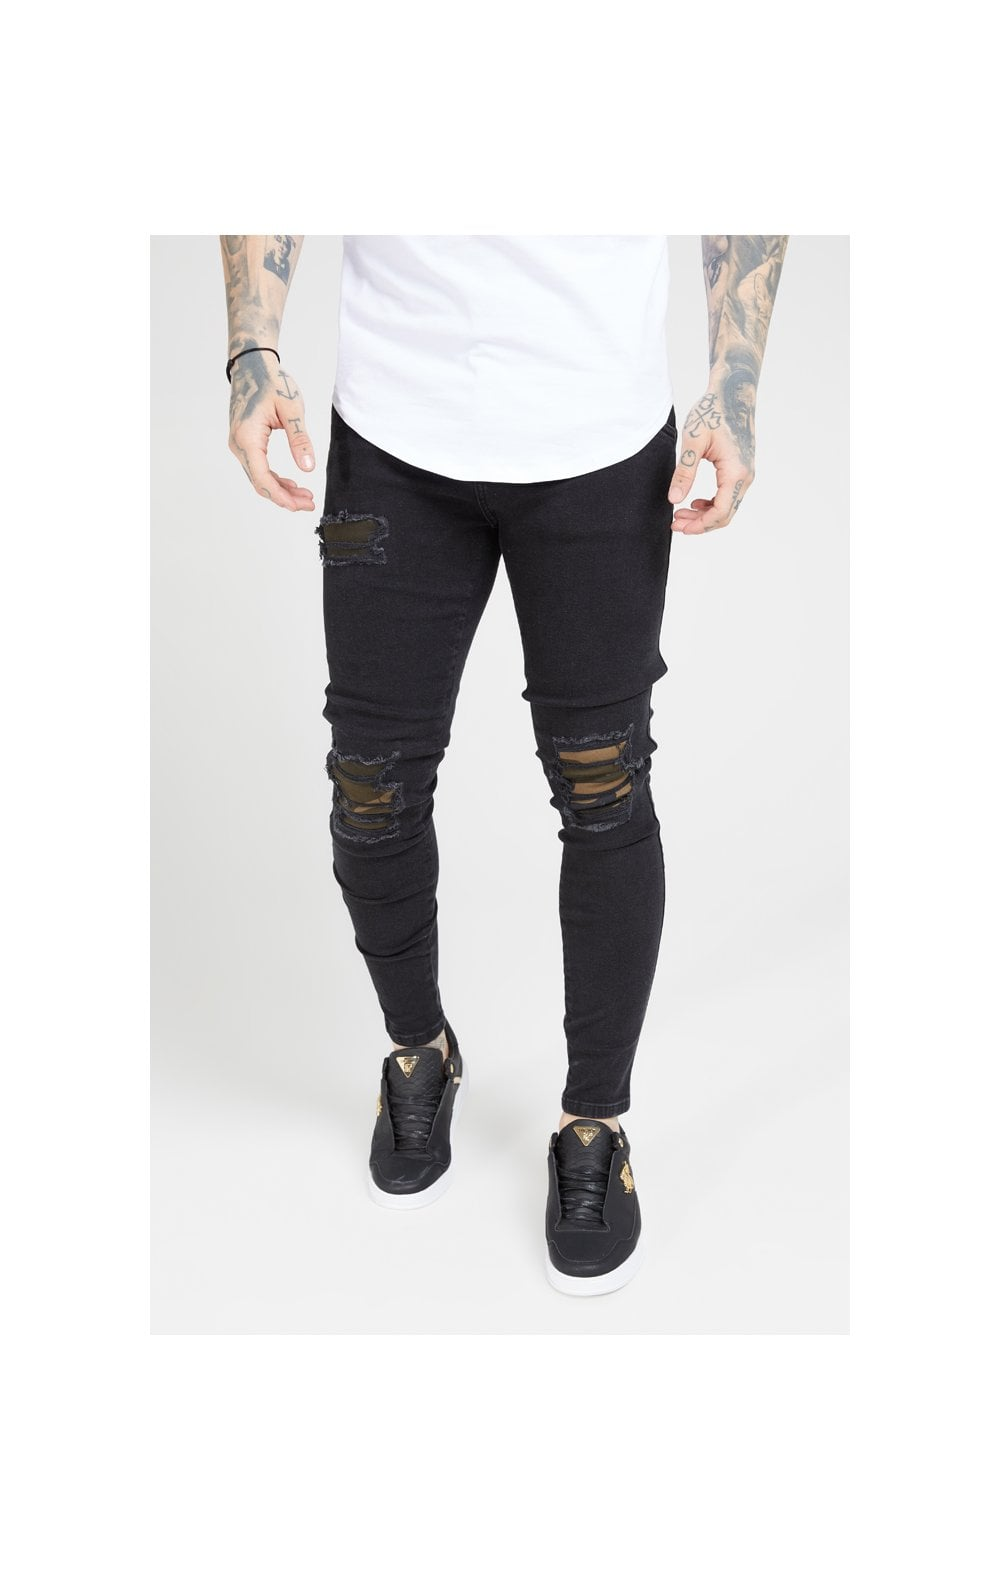 Load image into Gallery viewer, SikSilk Burst Knee Low Rise Denims - Washed Black & Camo (1)